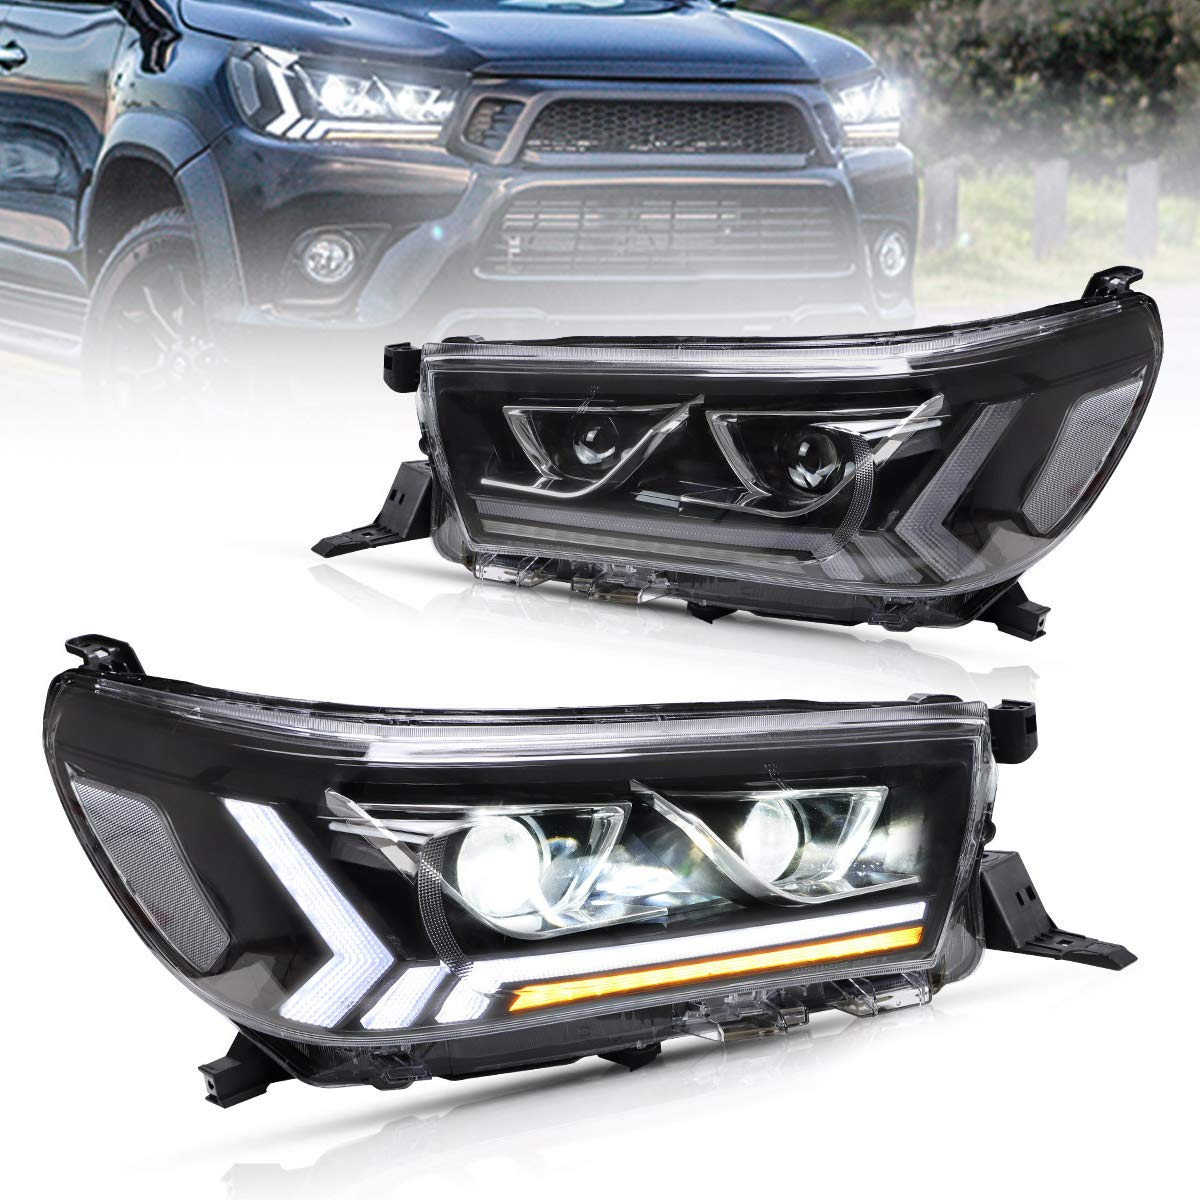 VLAND LED Headlights Compatible with Hilux Revo Vigo 2015 2016 2017 2018 2019 with Sequential Turn Signal YAA-VG-2019A